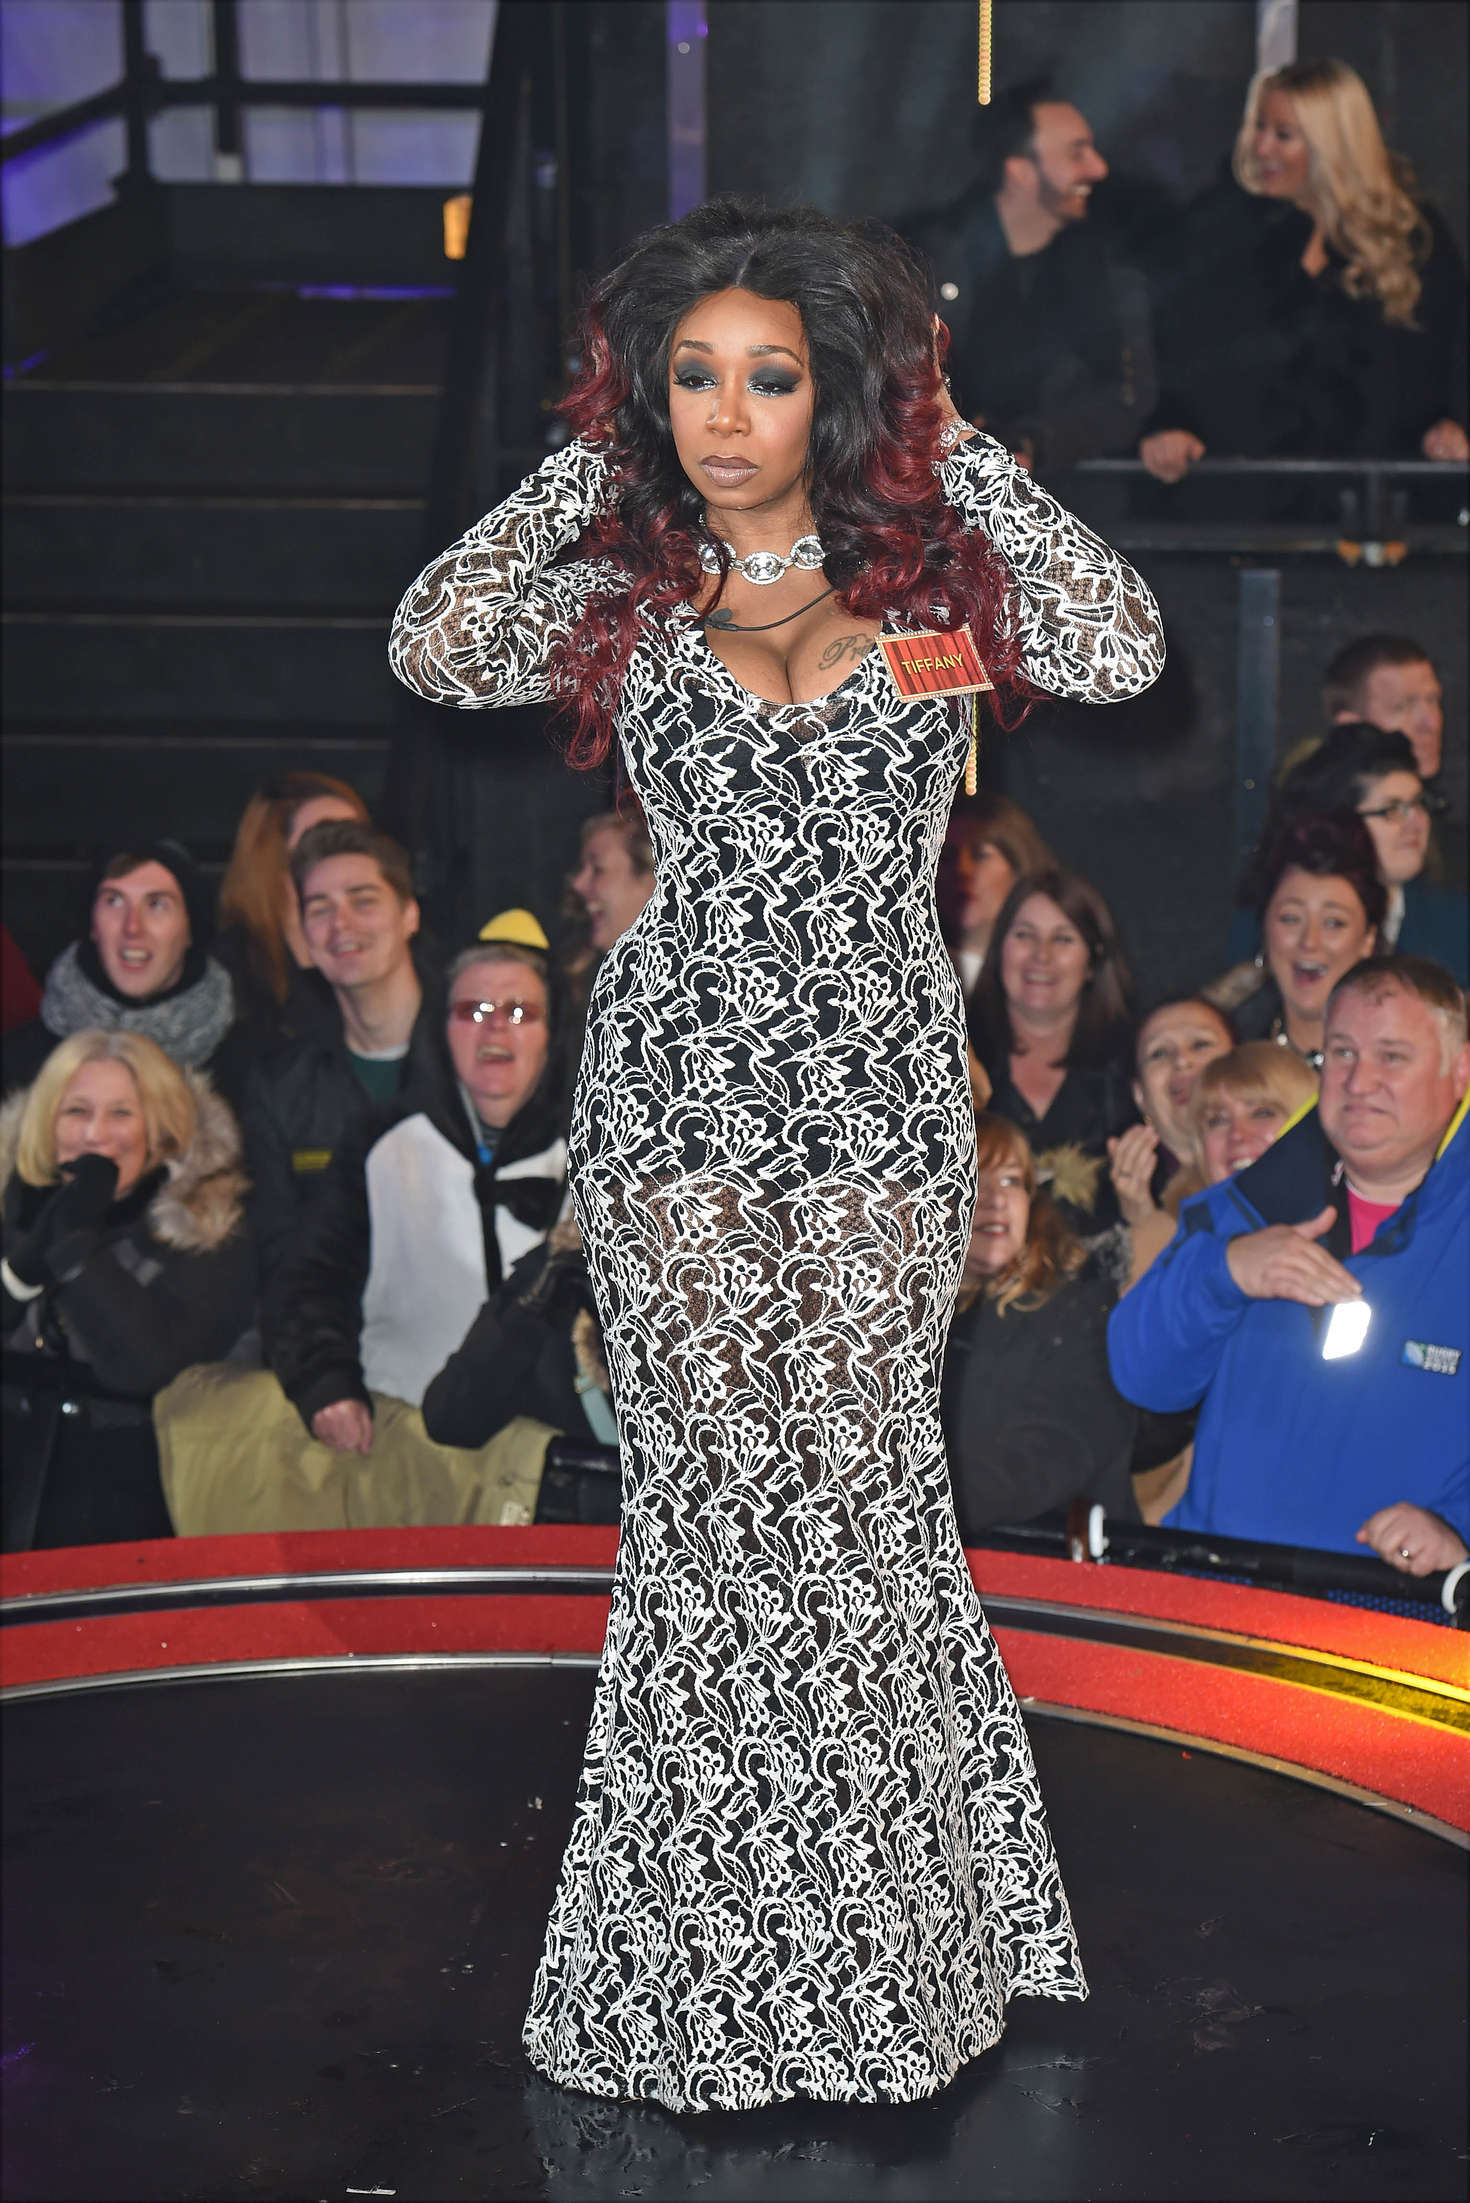 Celebrity Big Brother 4 | Big Brother UK Wiki | FANDOM ...